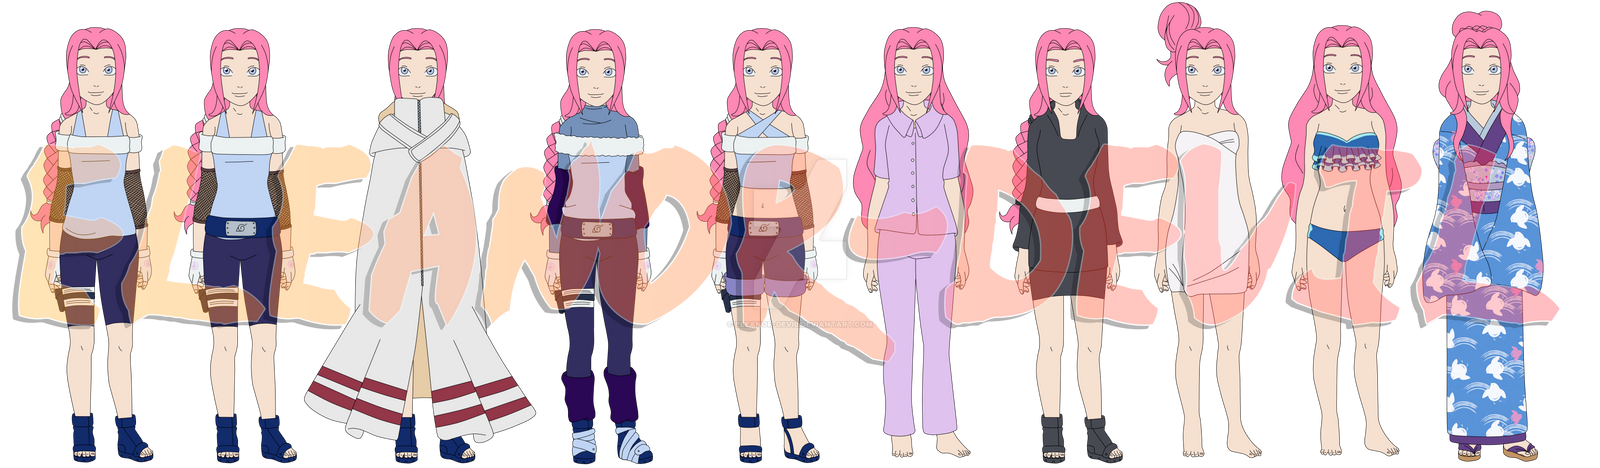 Naomi Saruwatari - Pre-Shippuden Outfits by Eleanor-Devil